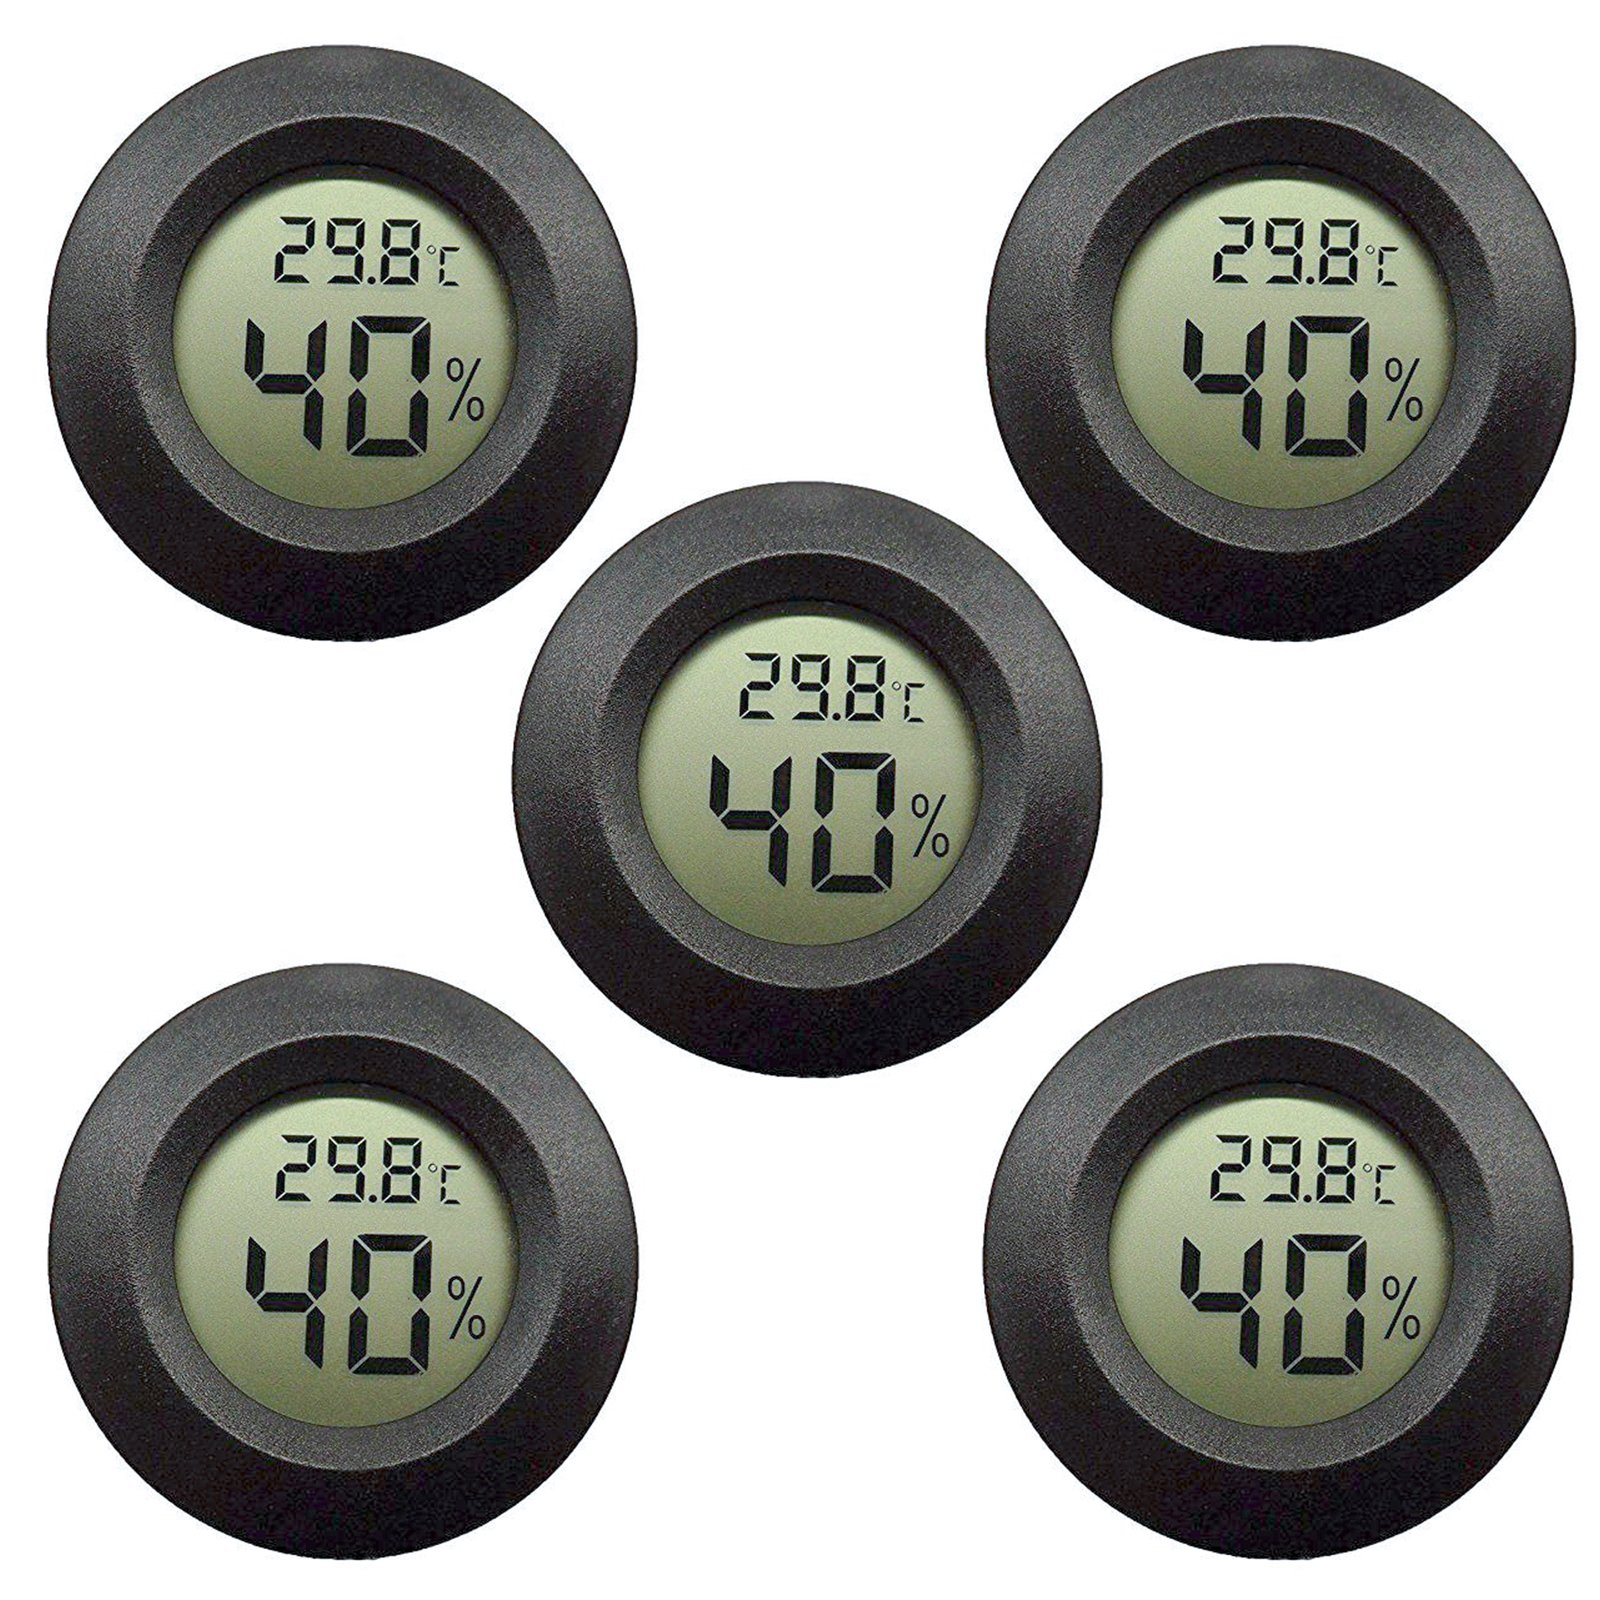 EEEkit Hygrometer Thermometer Digital LCD Monitor Indoor Outdoor Humidity Meter Gauge for Humidifiers Dehumidifiers Greenhouse Basement Babyroom, Black Round (5-pack)